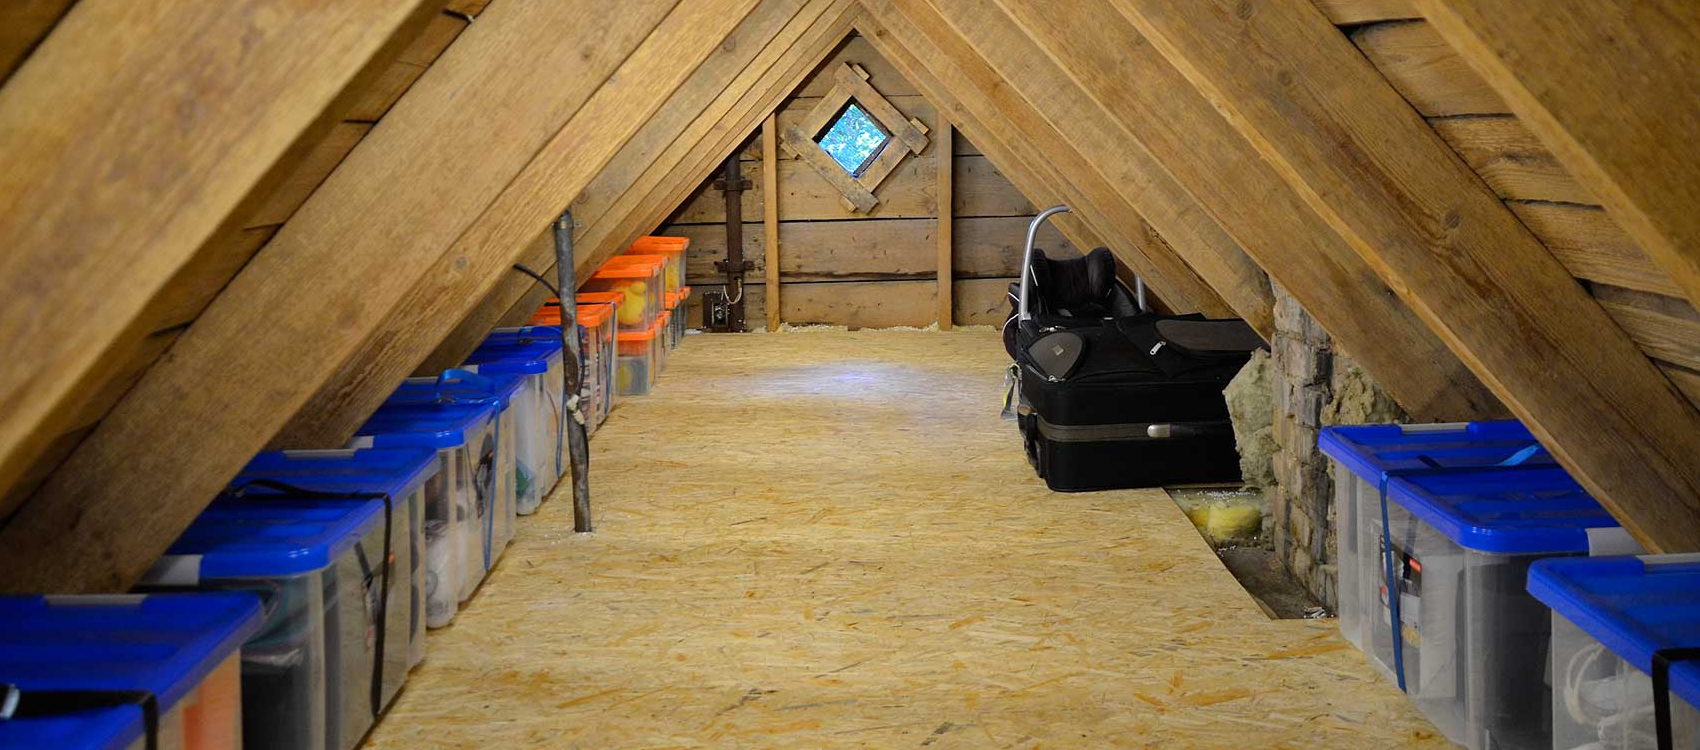 Flooring Attic Storage Solutions Attic Solutions Vendermicasa pertaining to dimensions 1700 X 750 & Attic Storage Shelving Ideas u2022 Attic Ideas